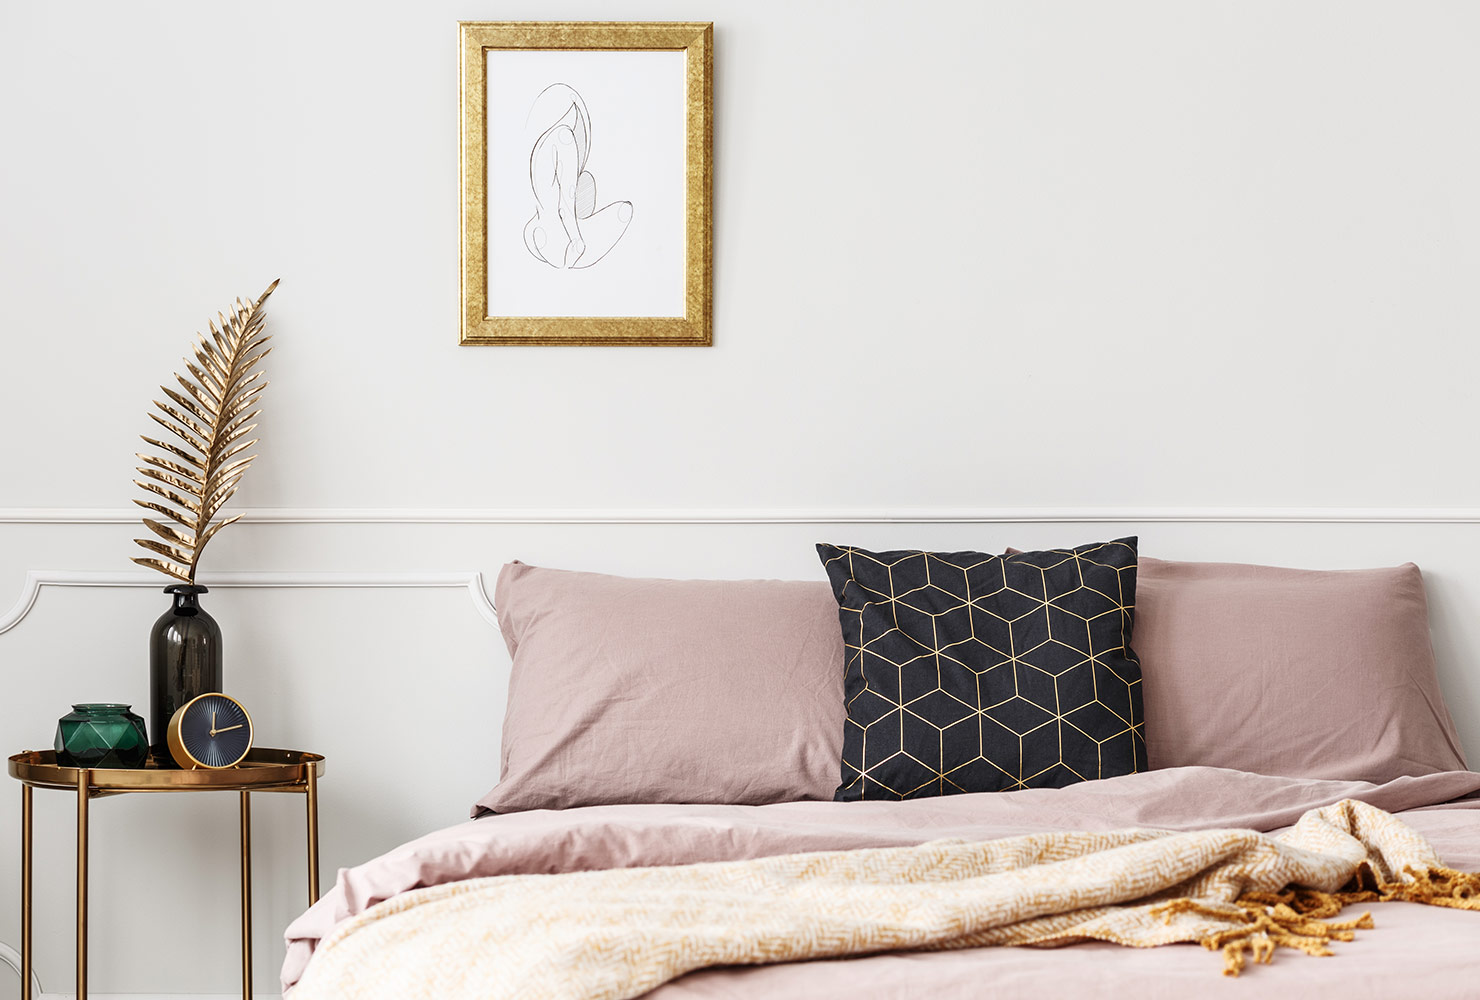 Bedroom with pink bedding and gold accent wall art.